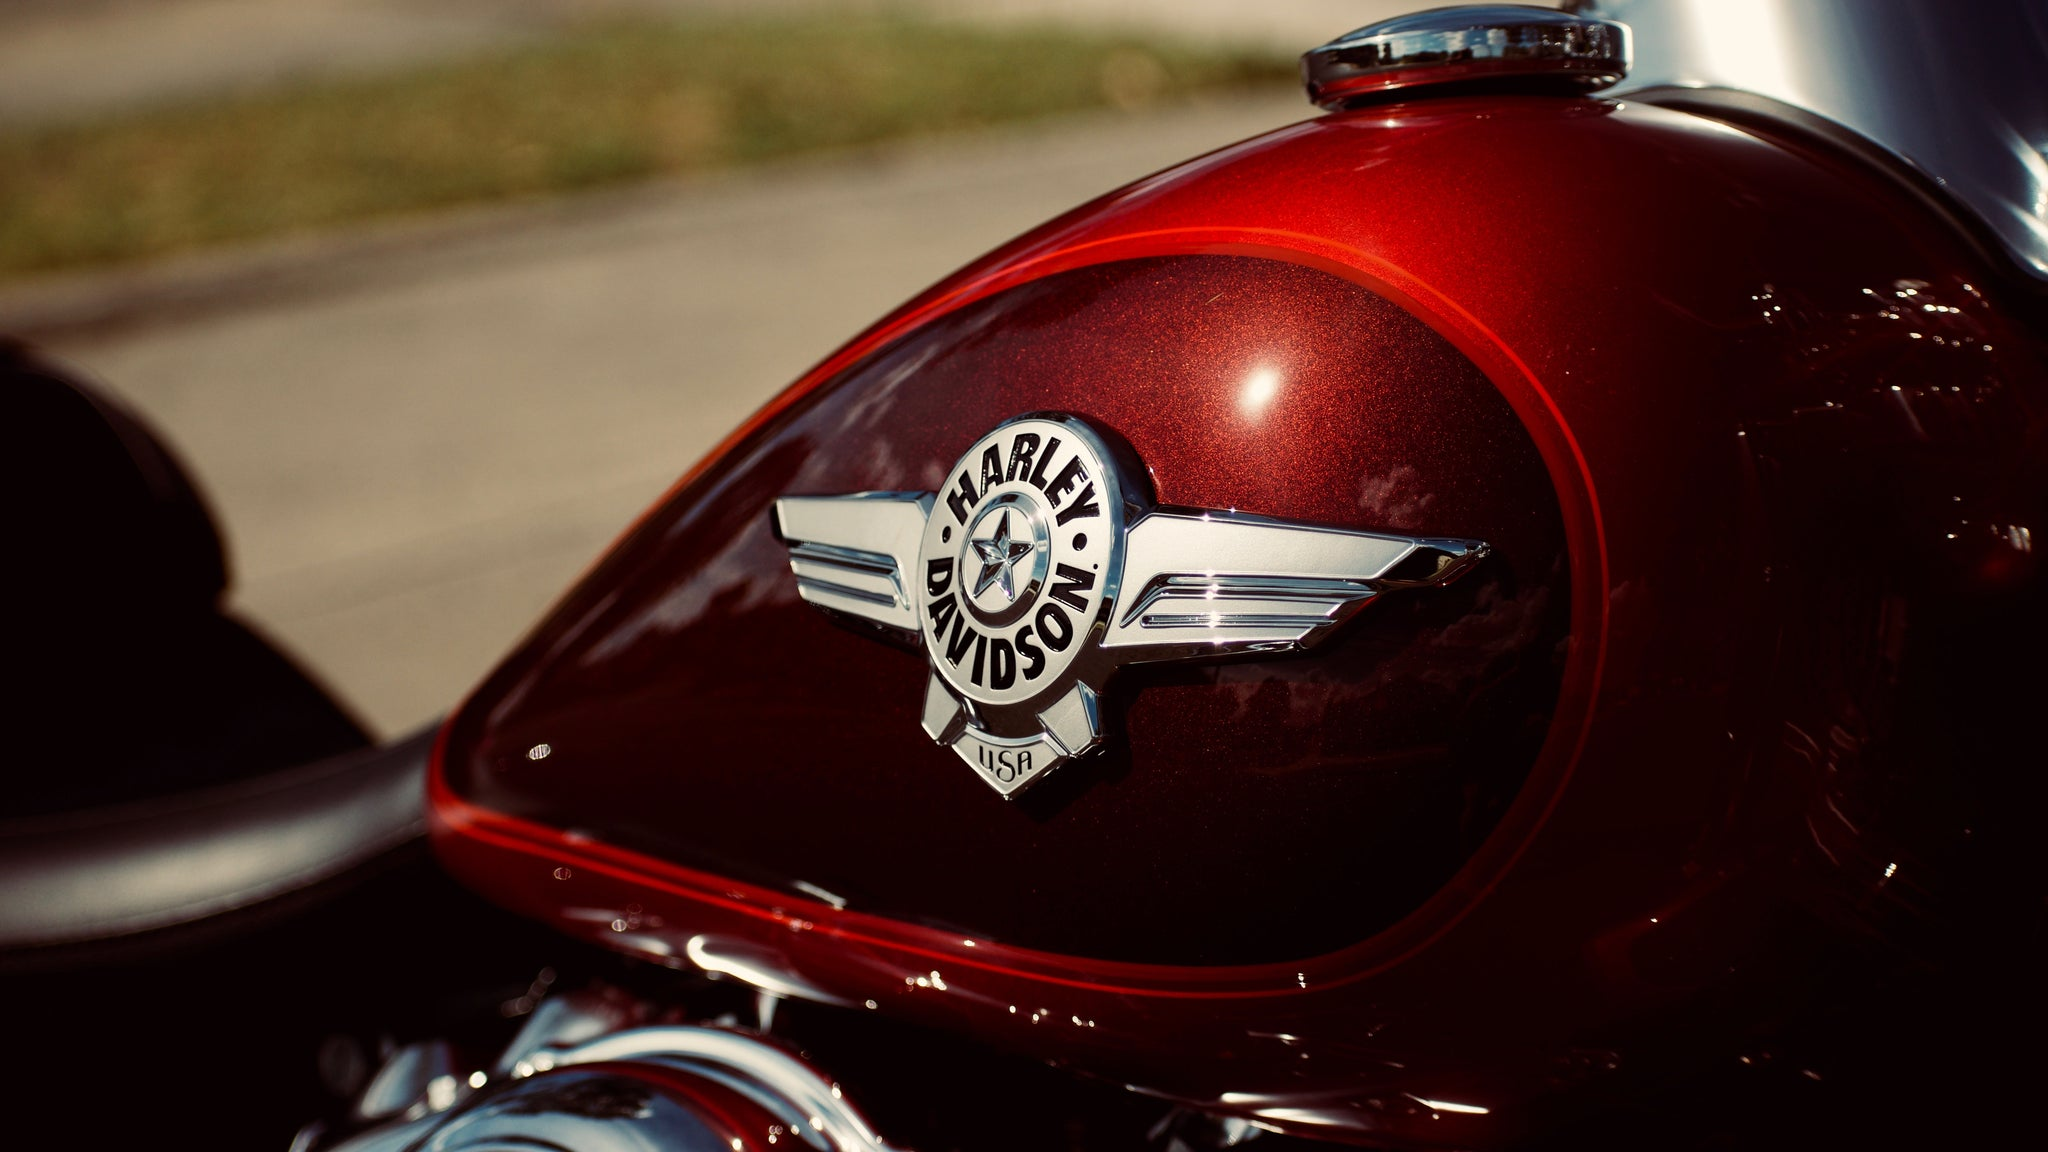 Best Motorcycle Rallies in the US